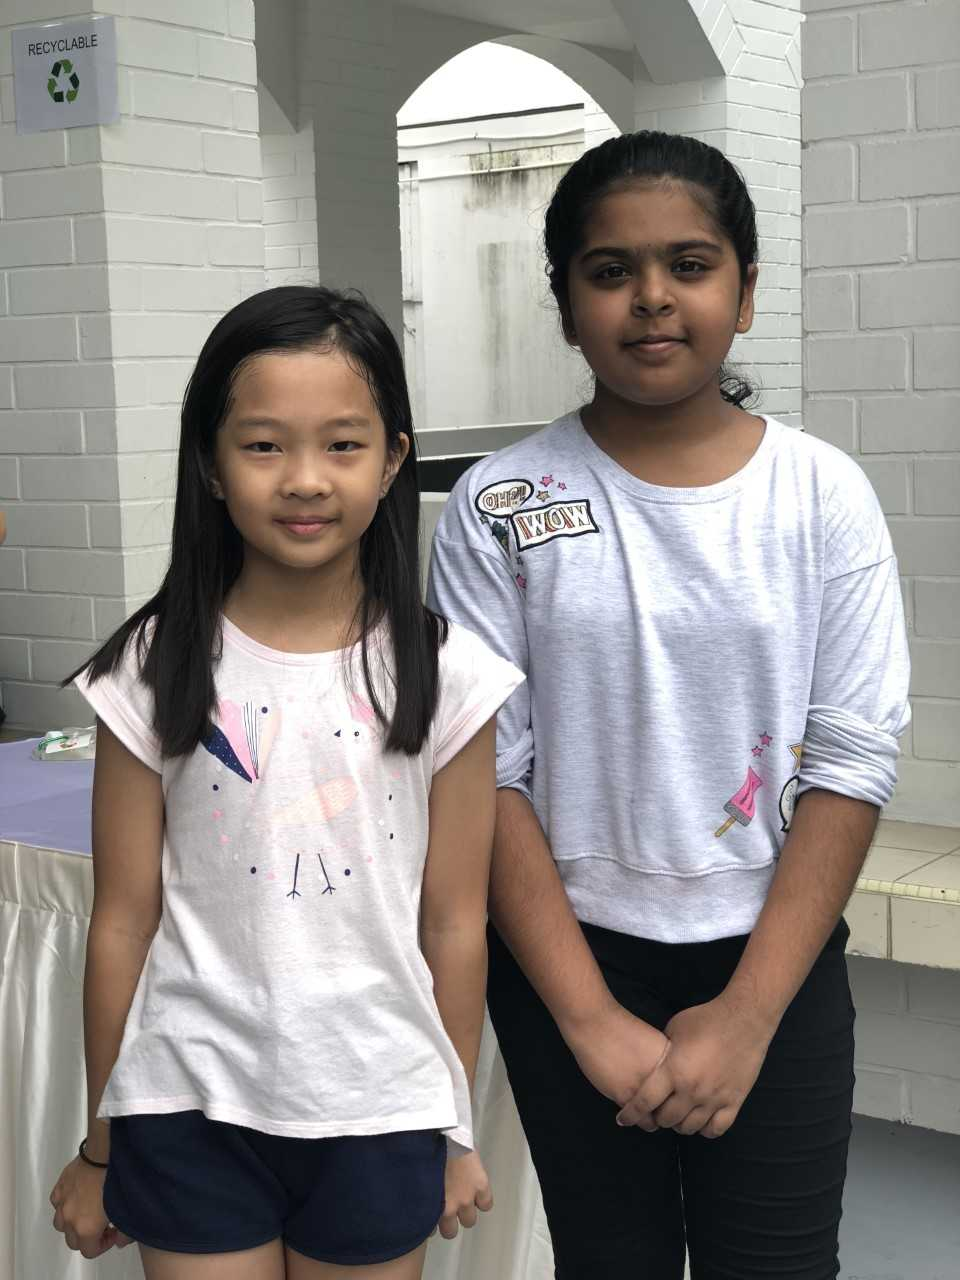 Kexin who came to volunteer all by herself made a new friend, Shreya Senthil while picking litter!